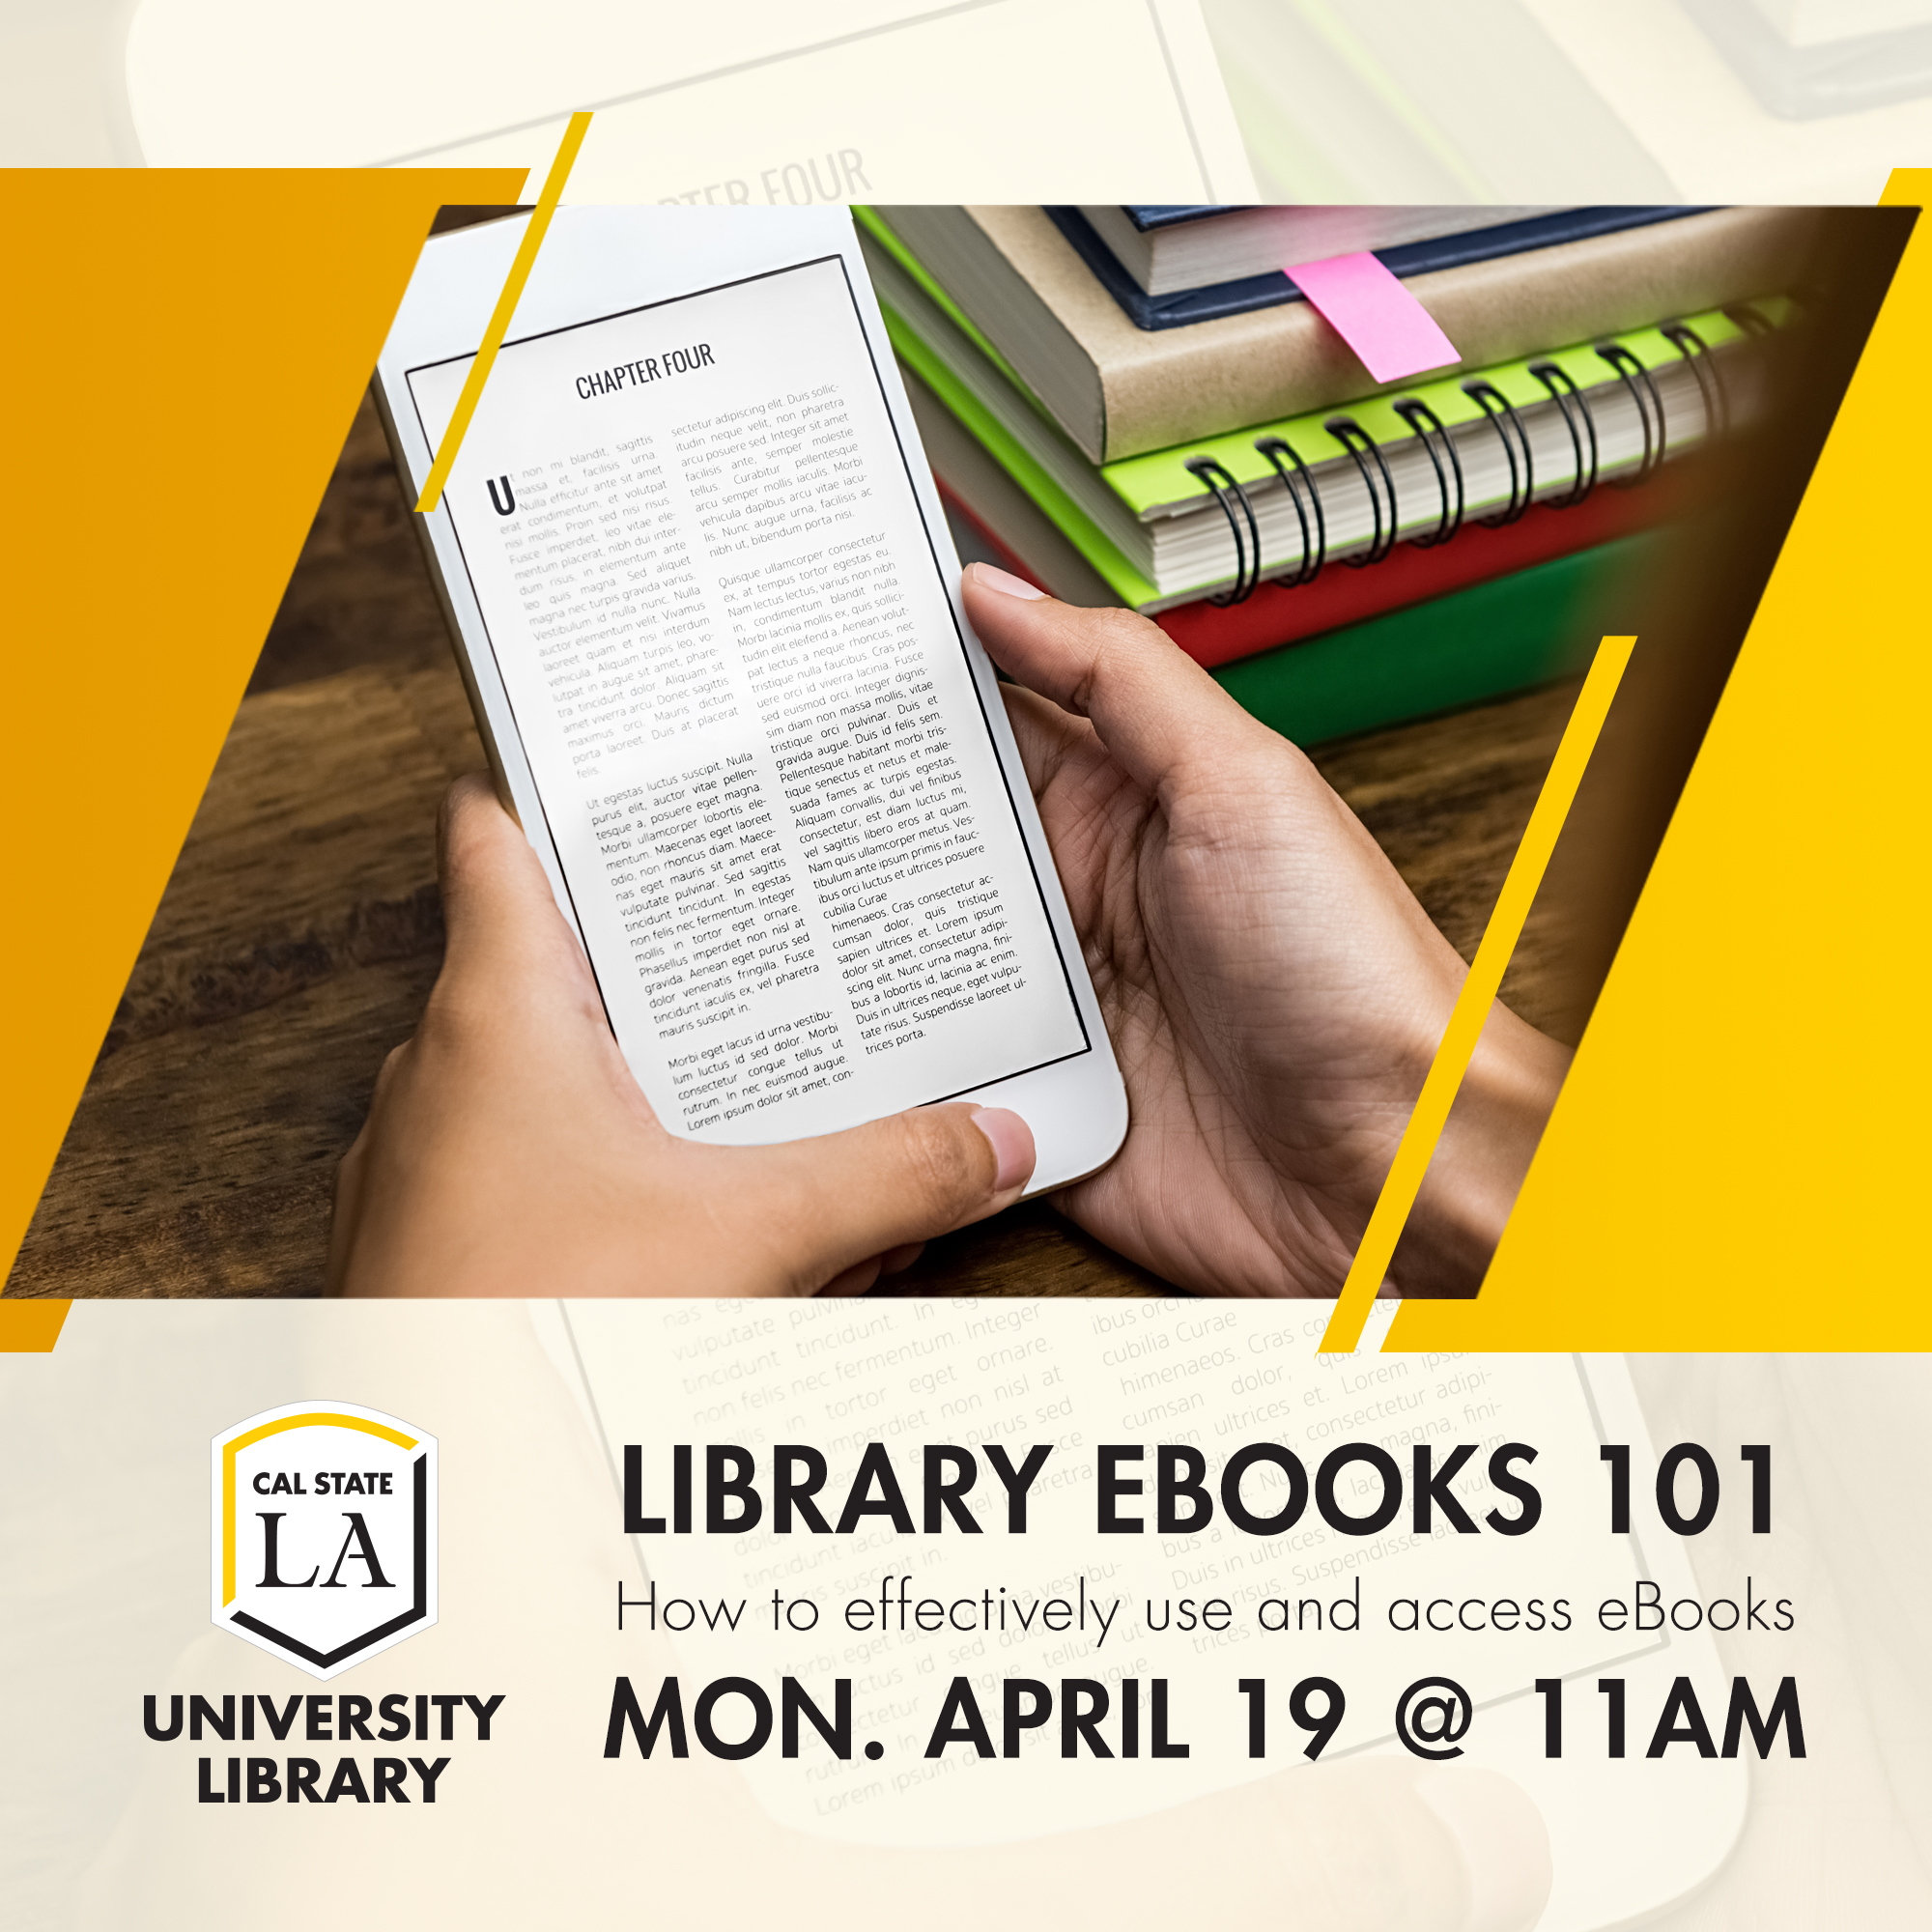 Library eBooks 101: How to Effectively Use and Access eBooks